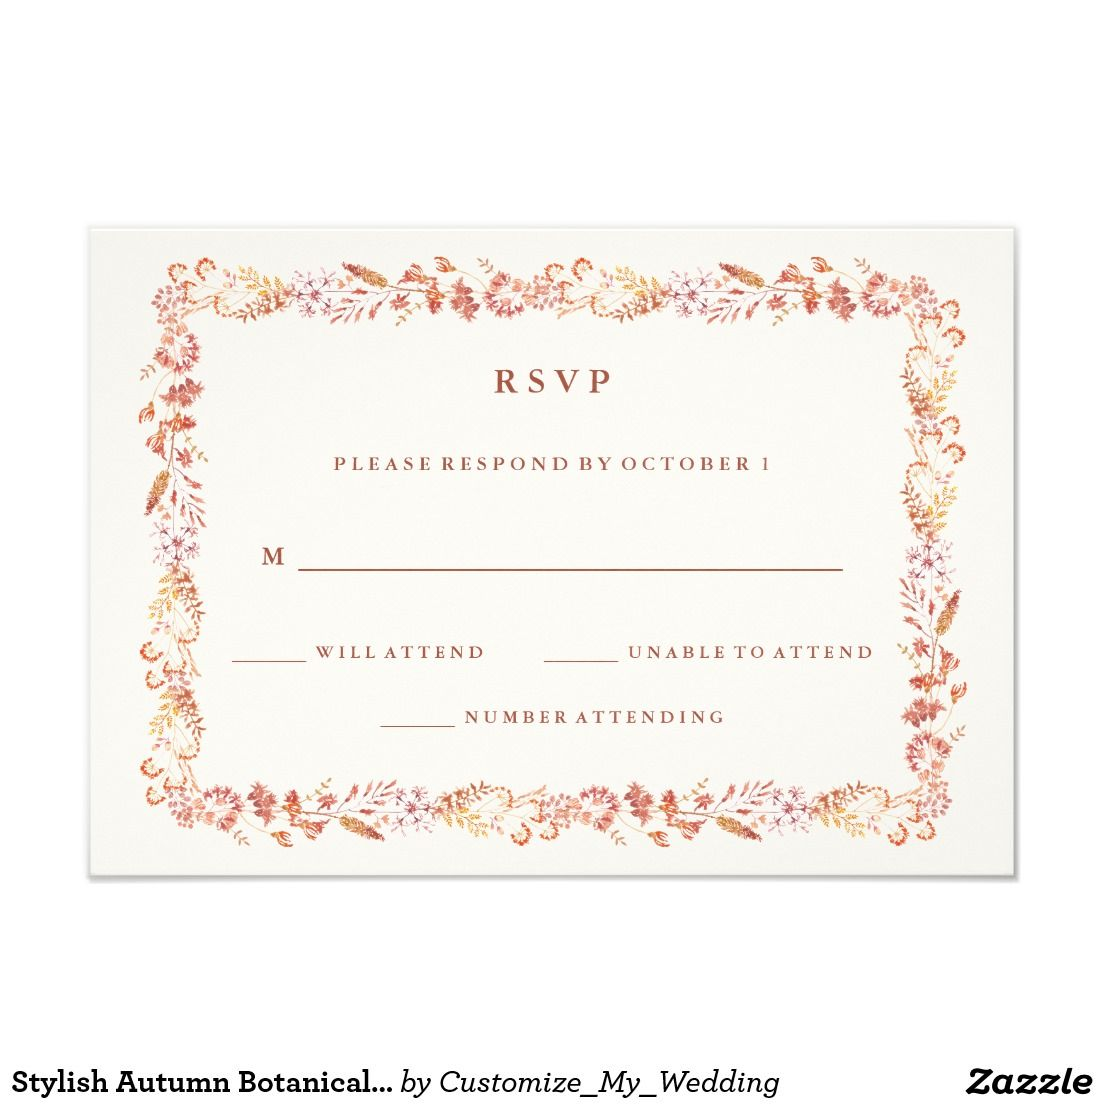 Stylish Autumn Botanicals RSVP